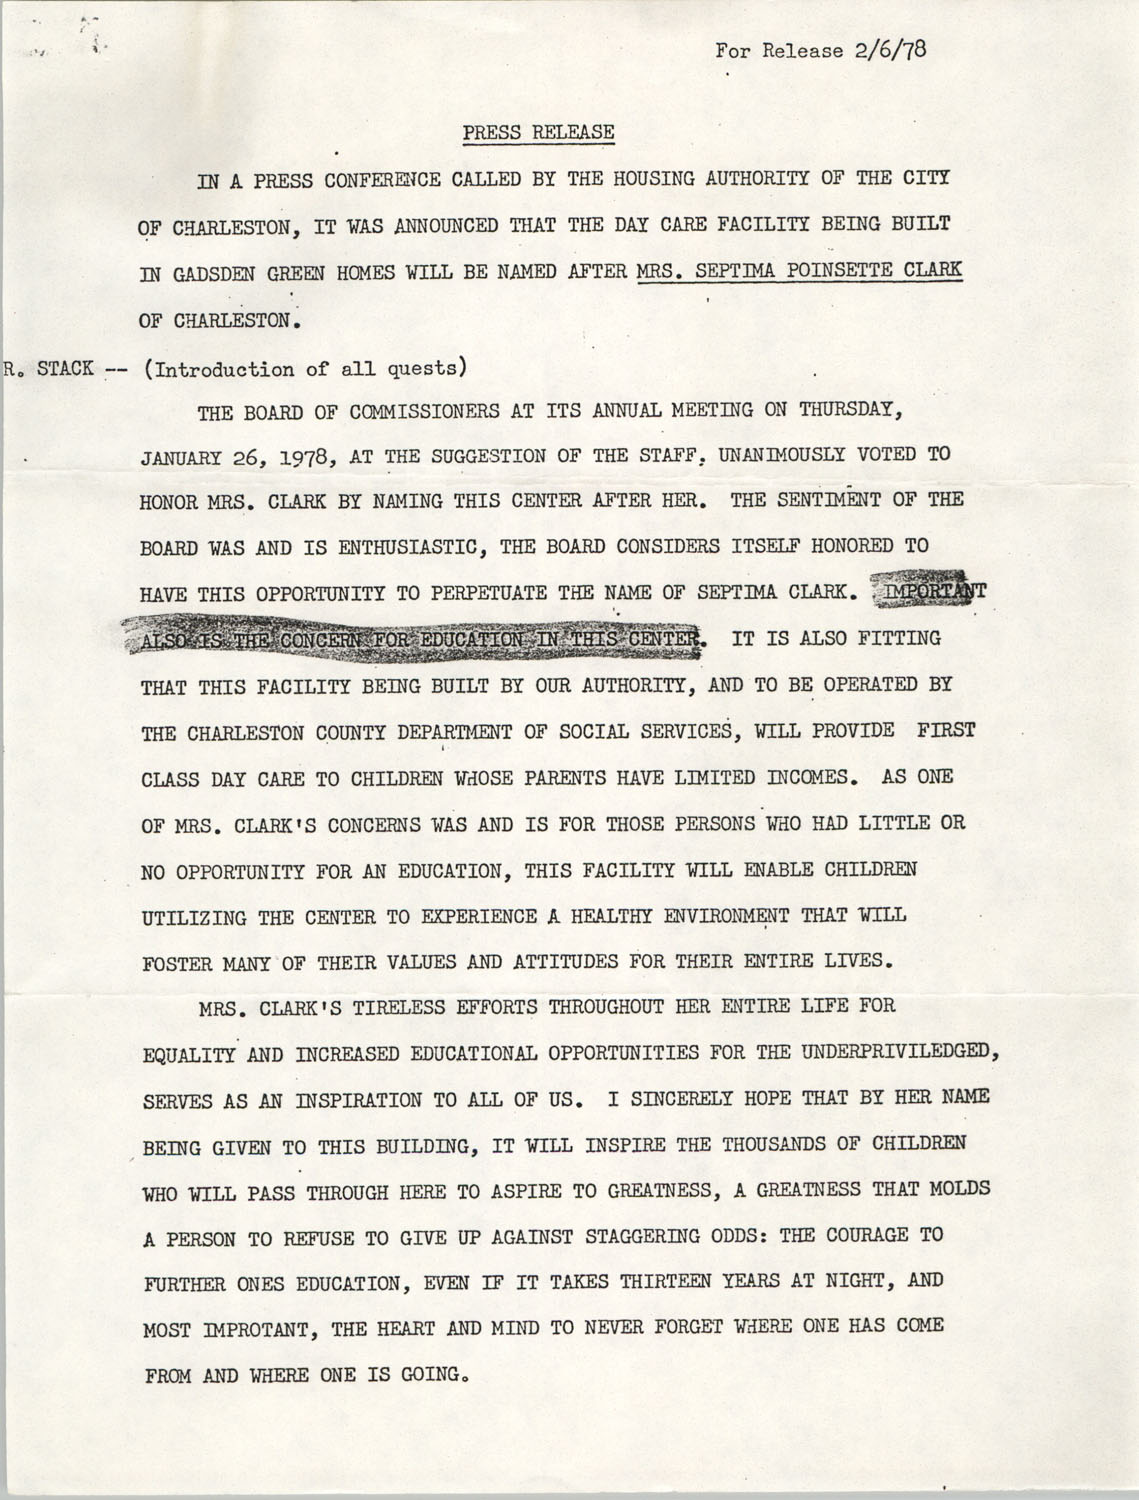 Press Release Statement, The Housing Authority of the City of Charleston, February 1978